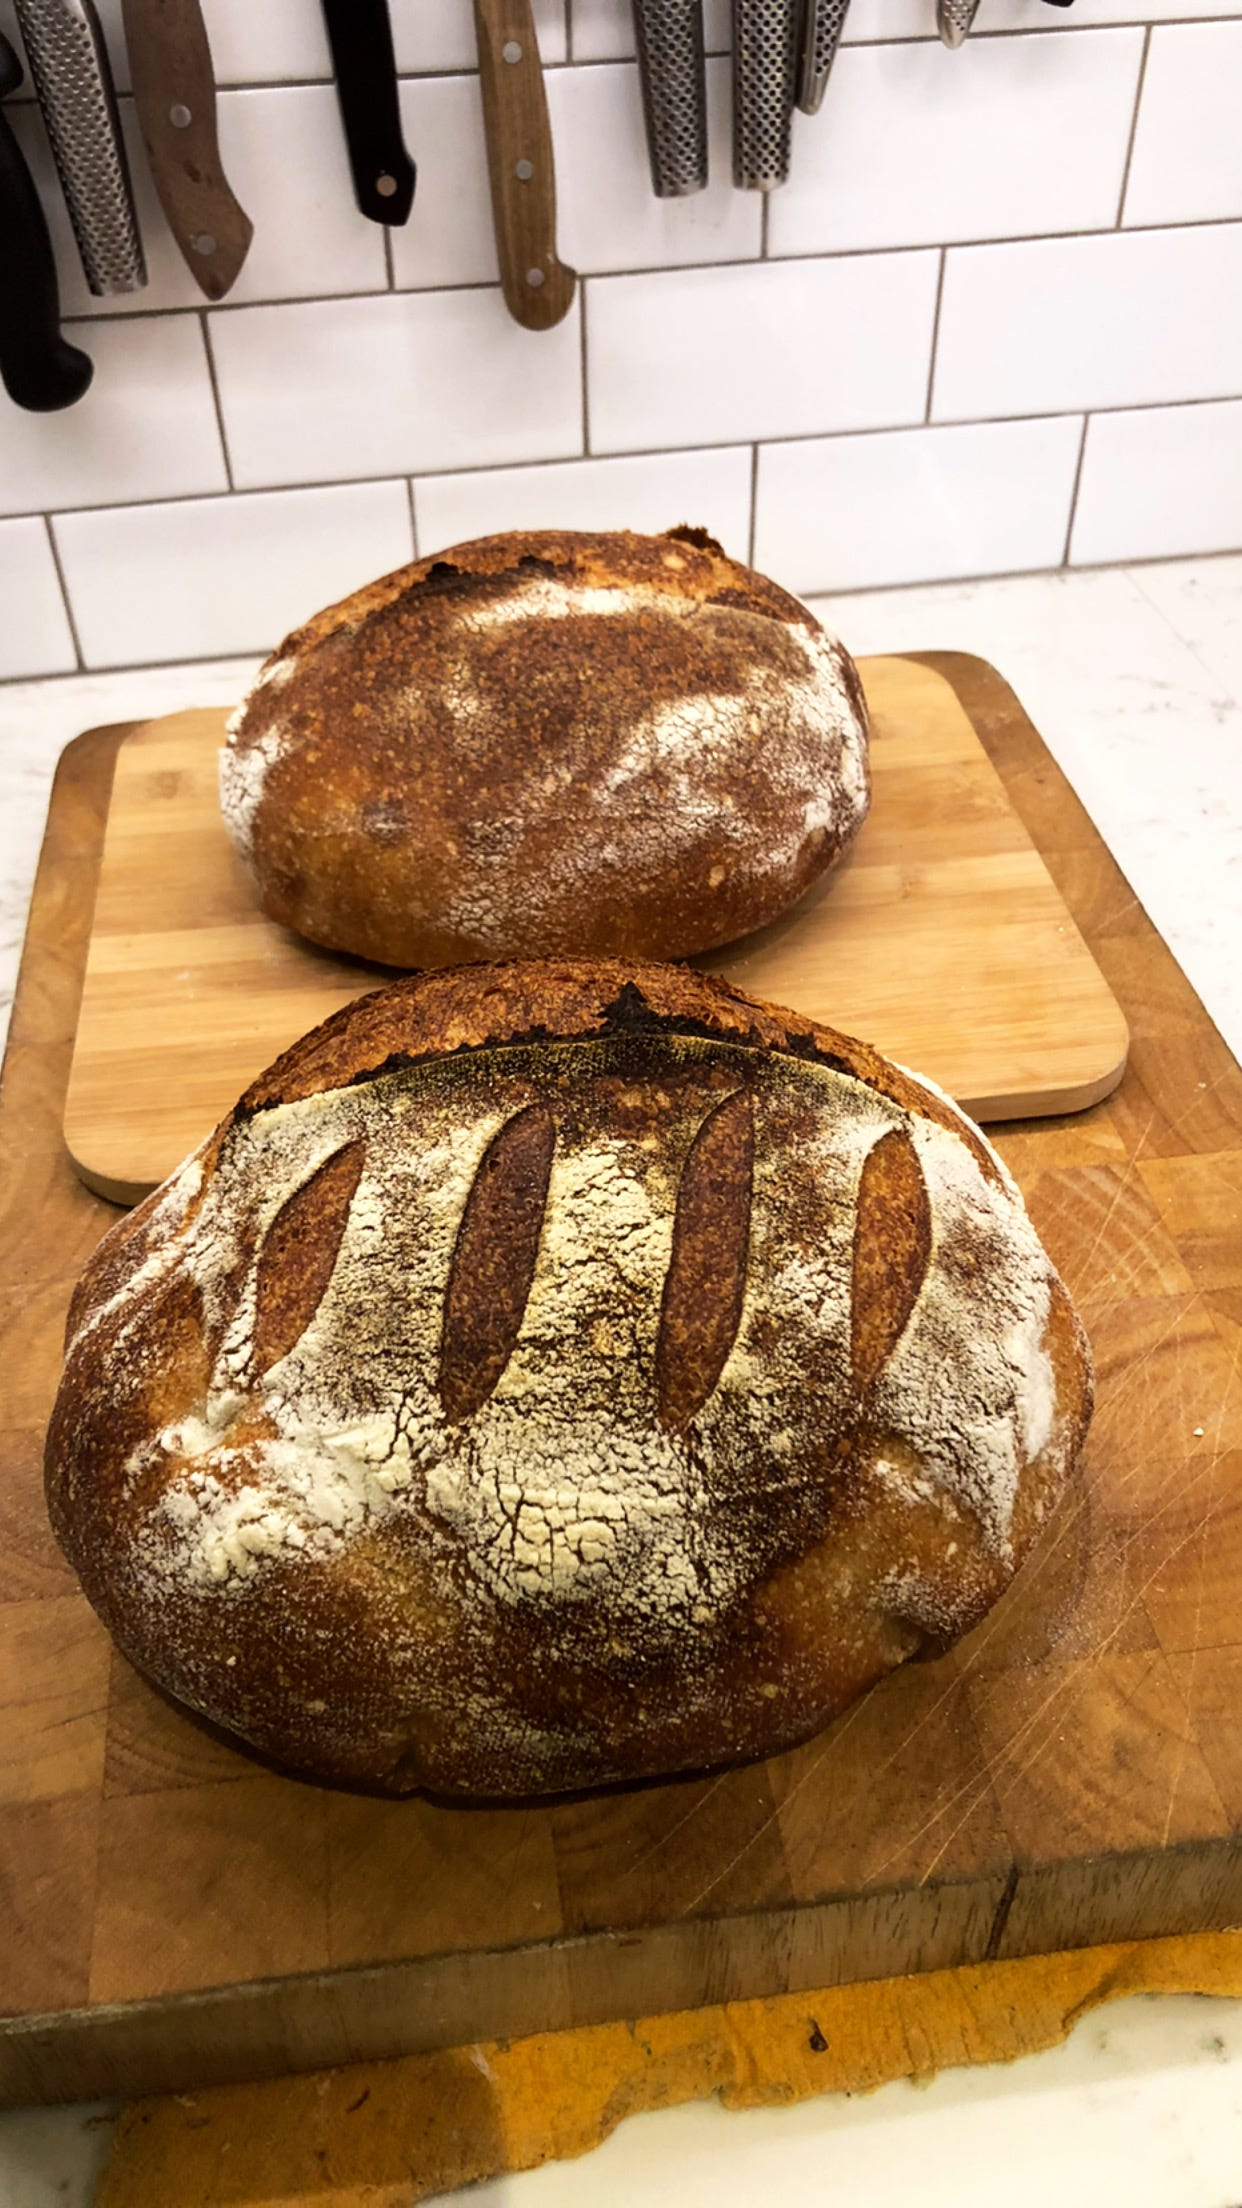 Two loaves of sourdough bread I baked